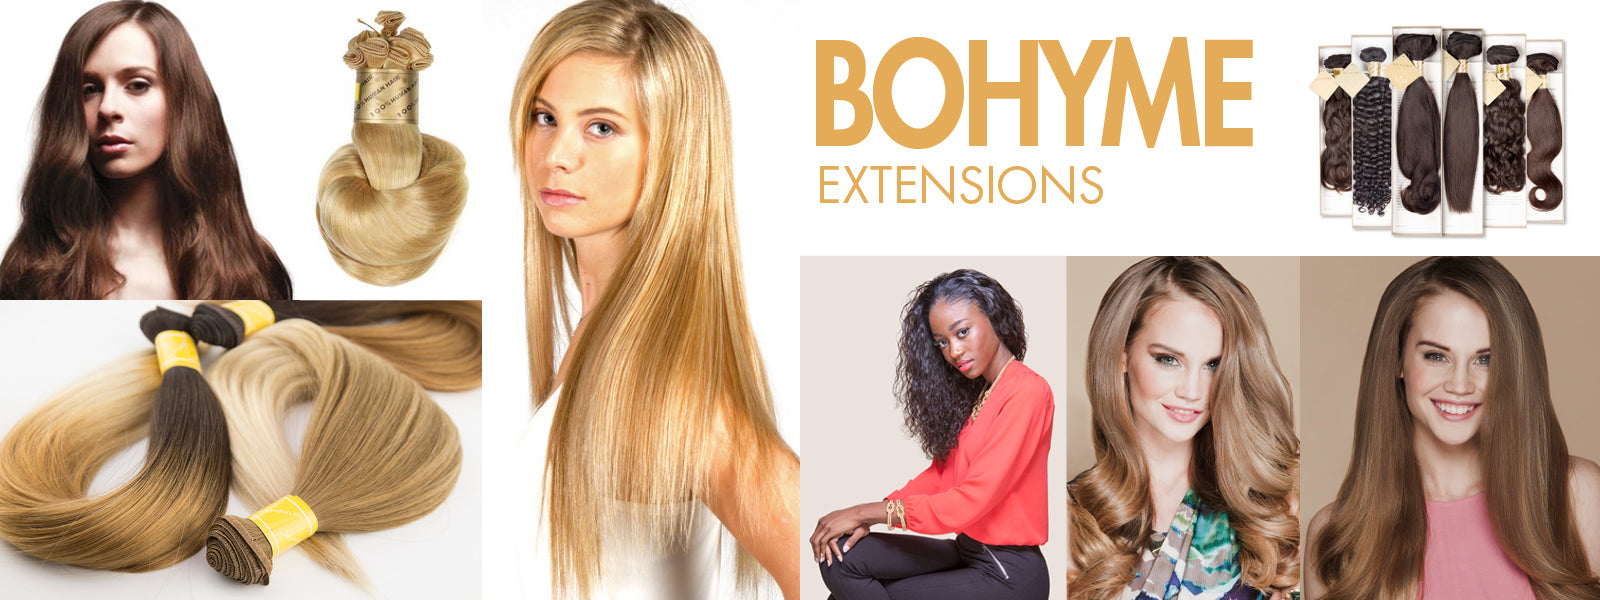 Bohyme Extensions available at Abantu